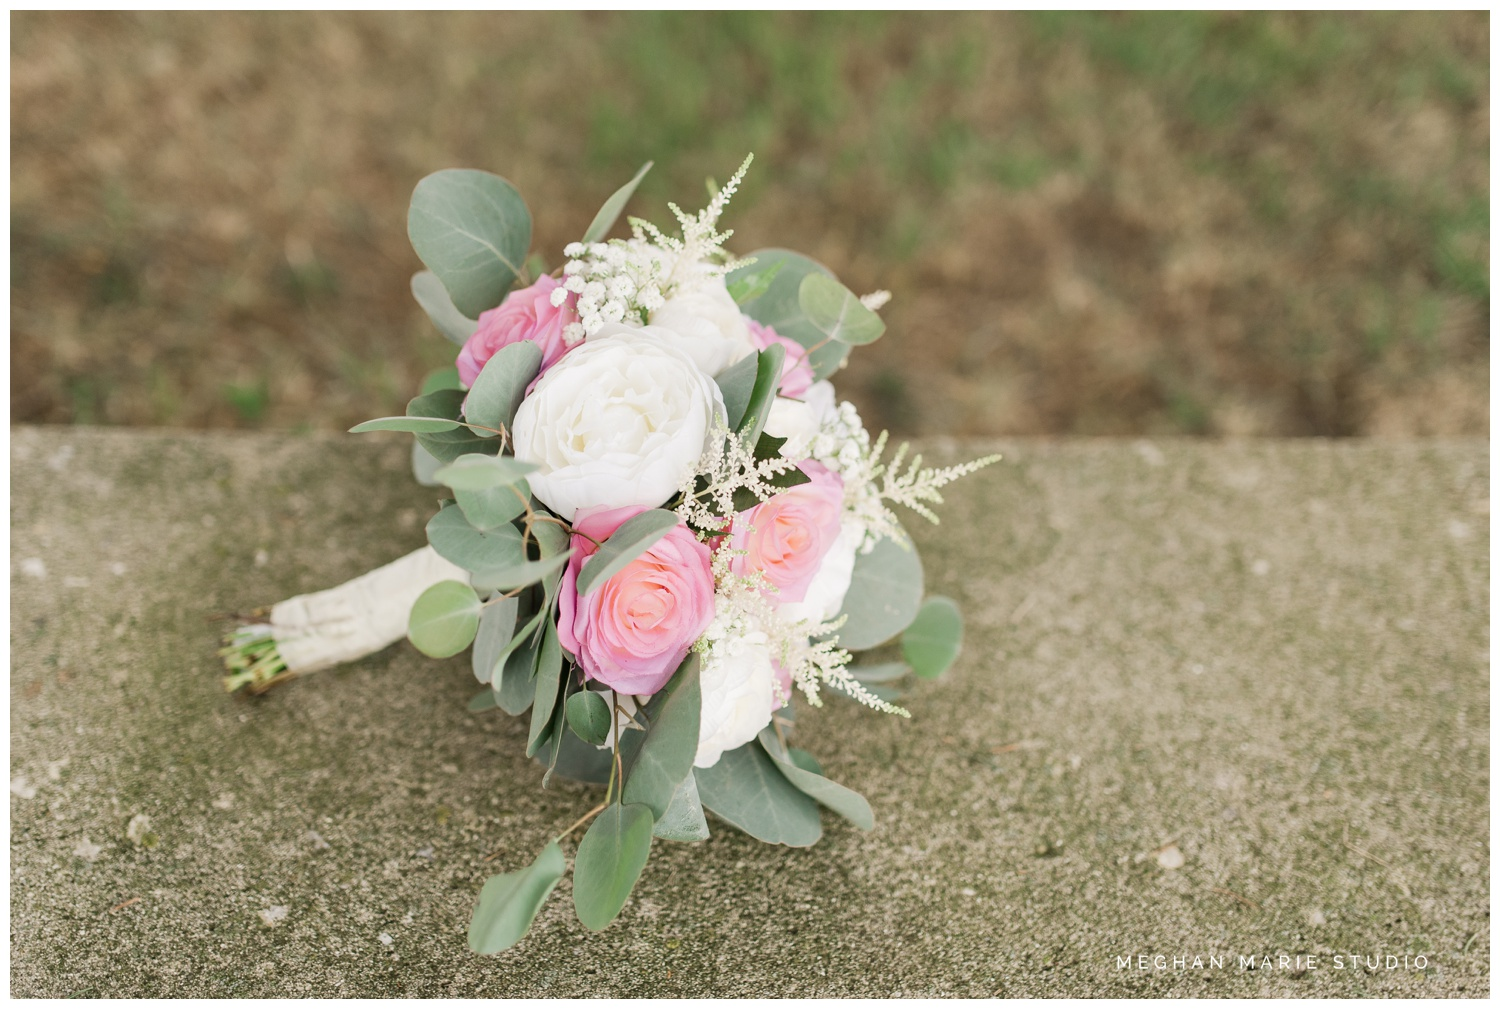 meghan marie studio wedding photographer ohio troy dayton columbus small town rustic rural farm cows vintage mauves dusty rose pinks whites ivorys grays f1 sound paper lanterns pearls_0578.jpg